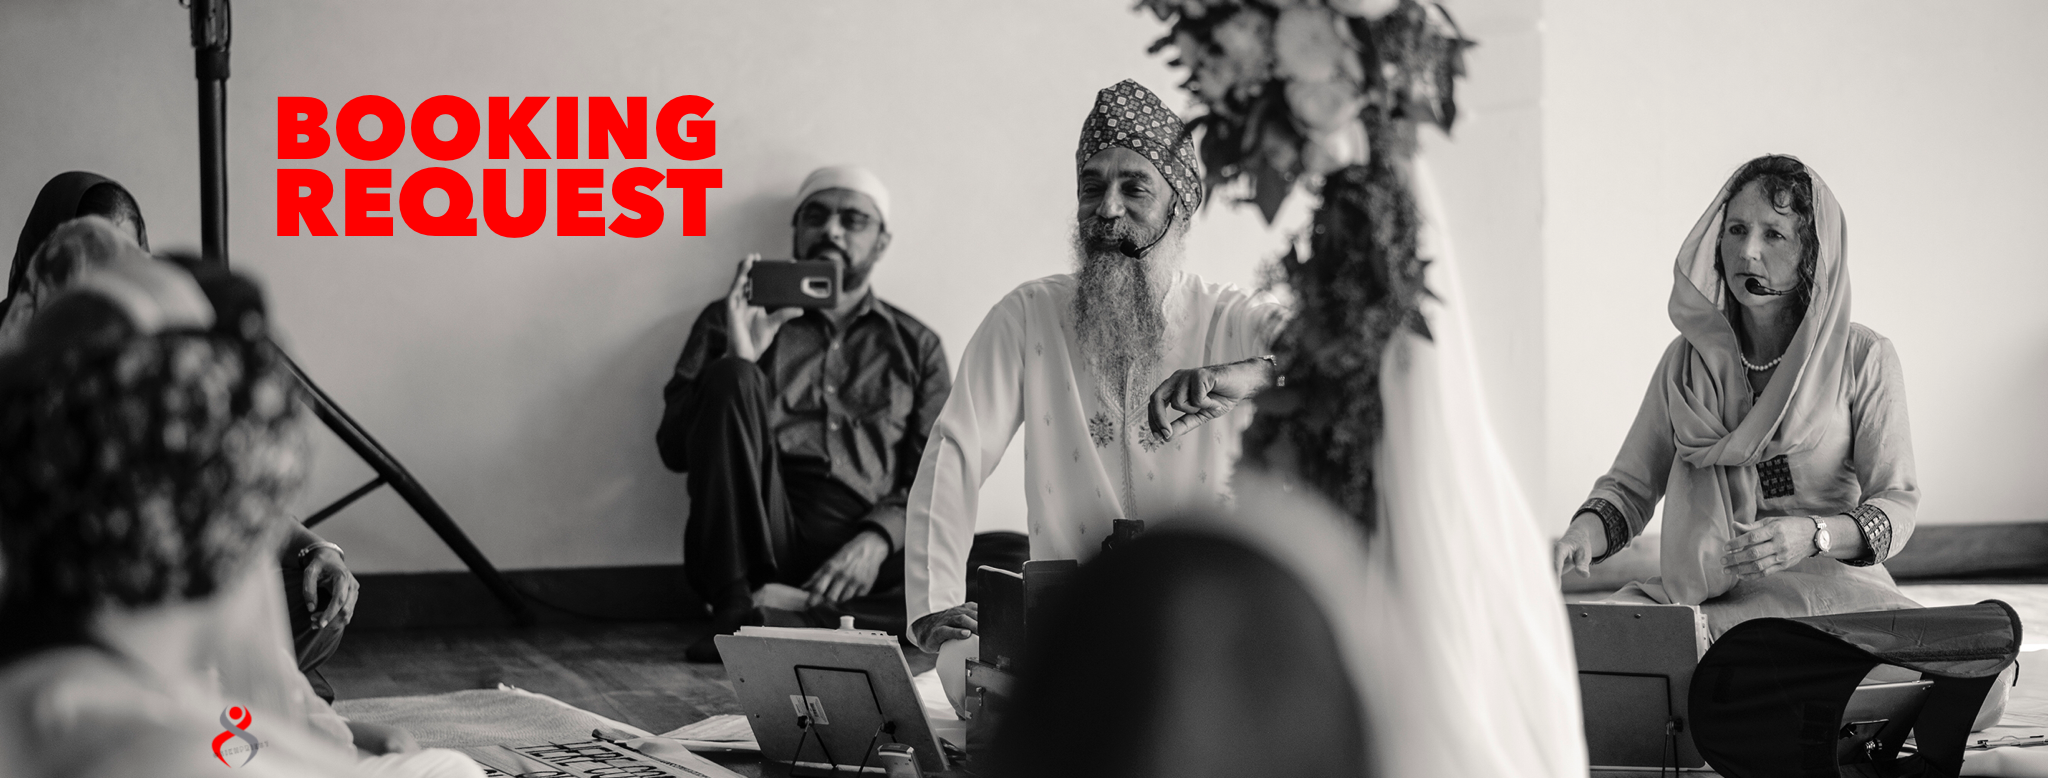 Sikh wedding priest booking